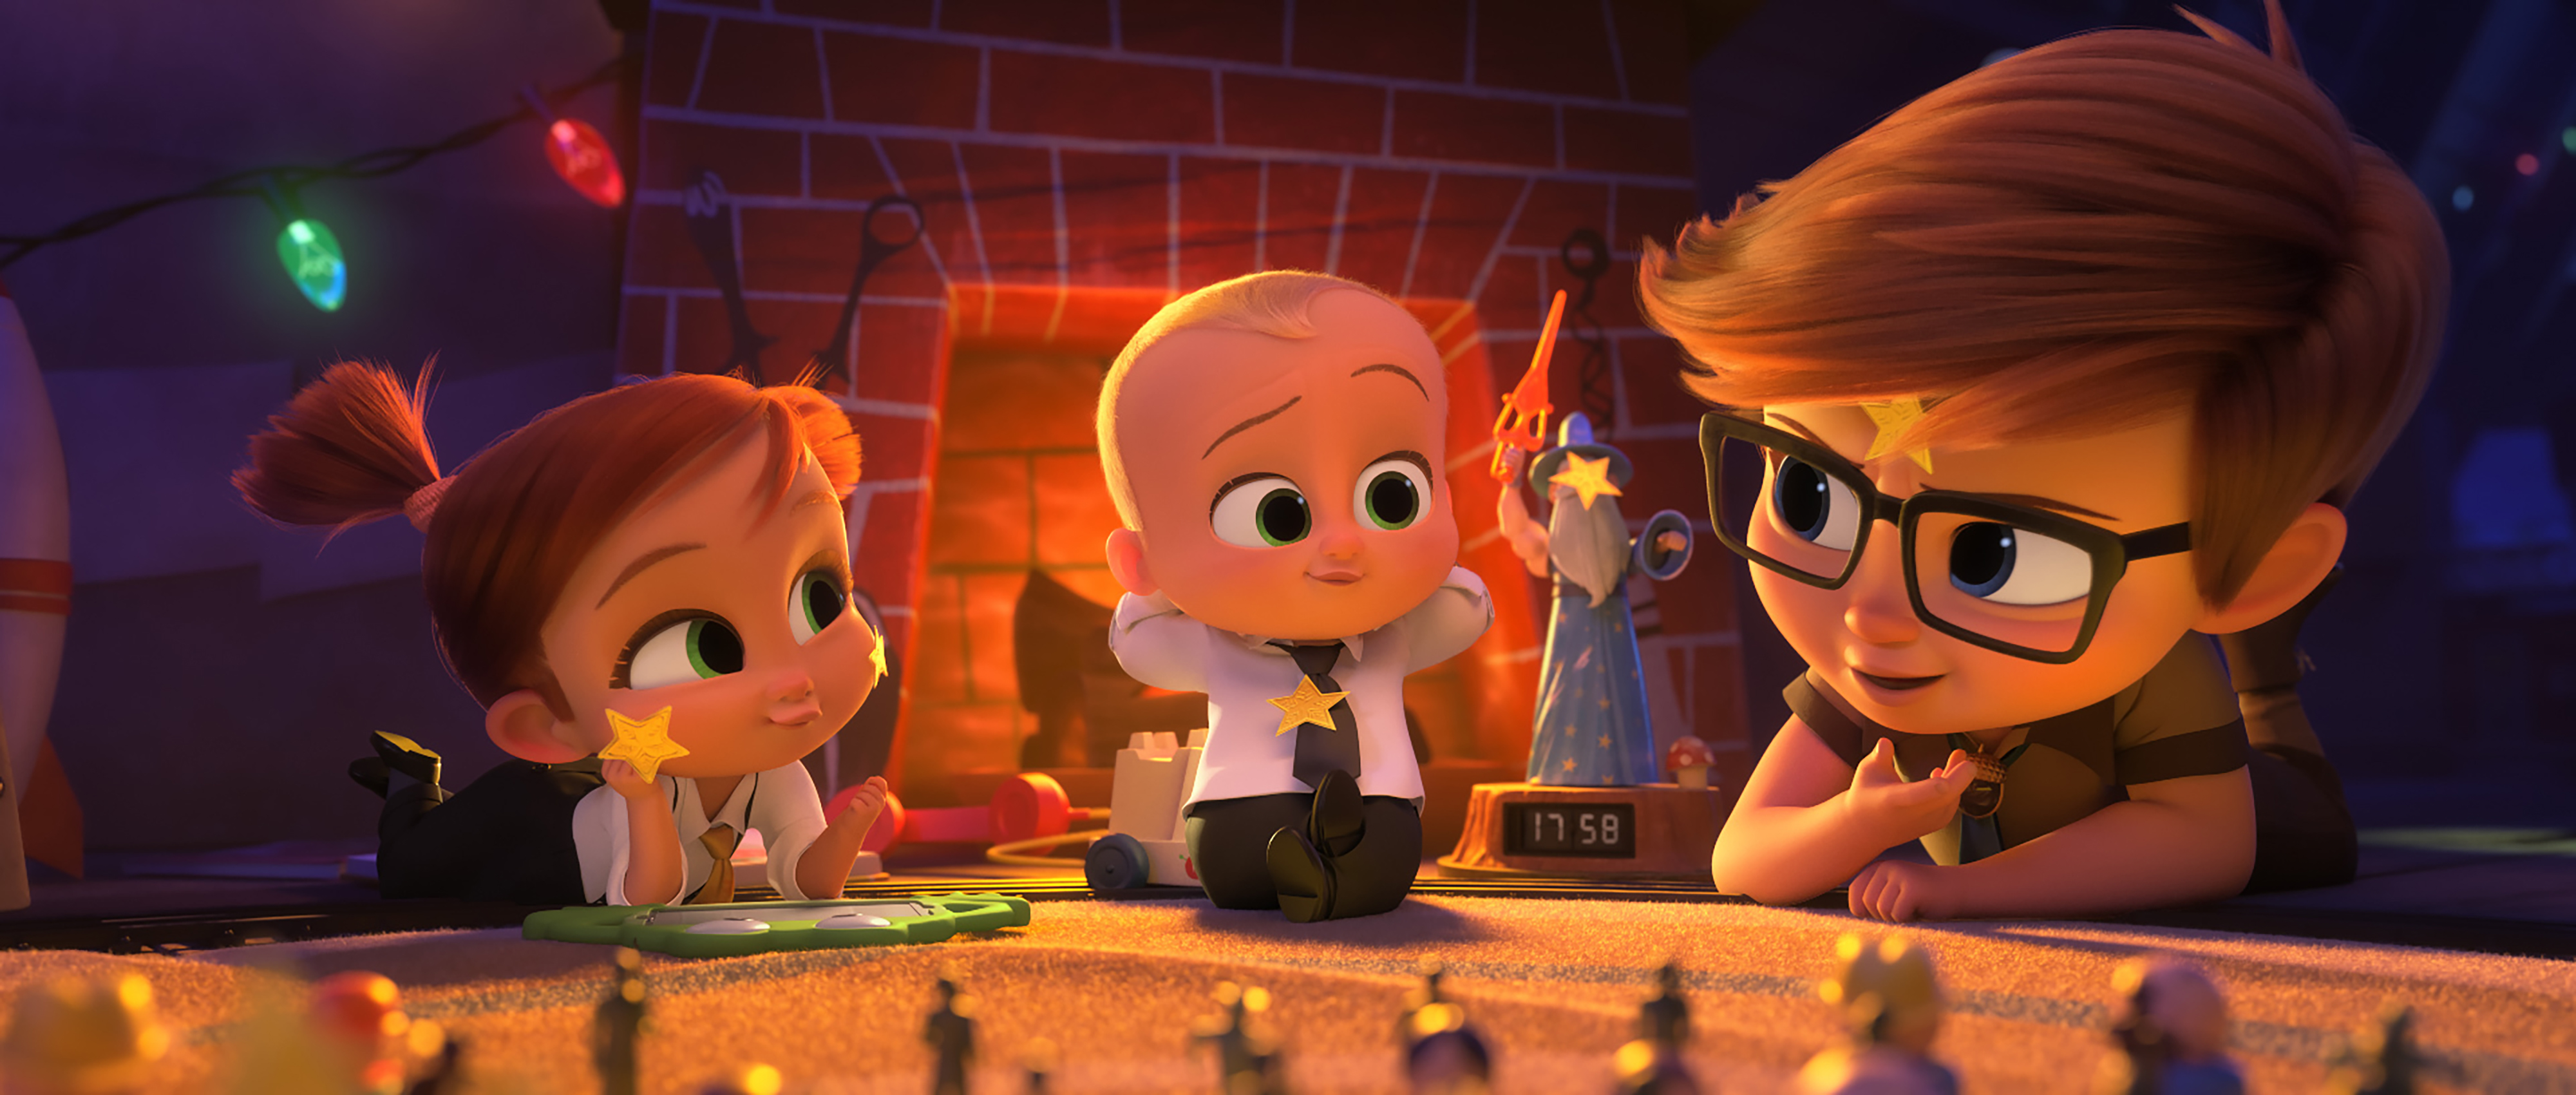 The Boss Baby: Family Business DreamWorks Animation